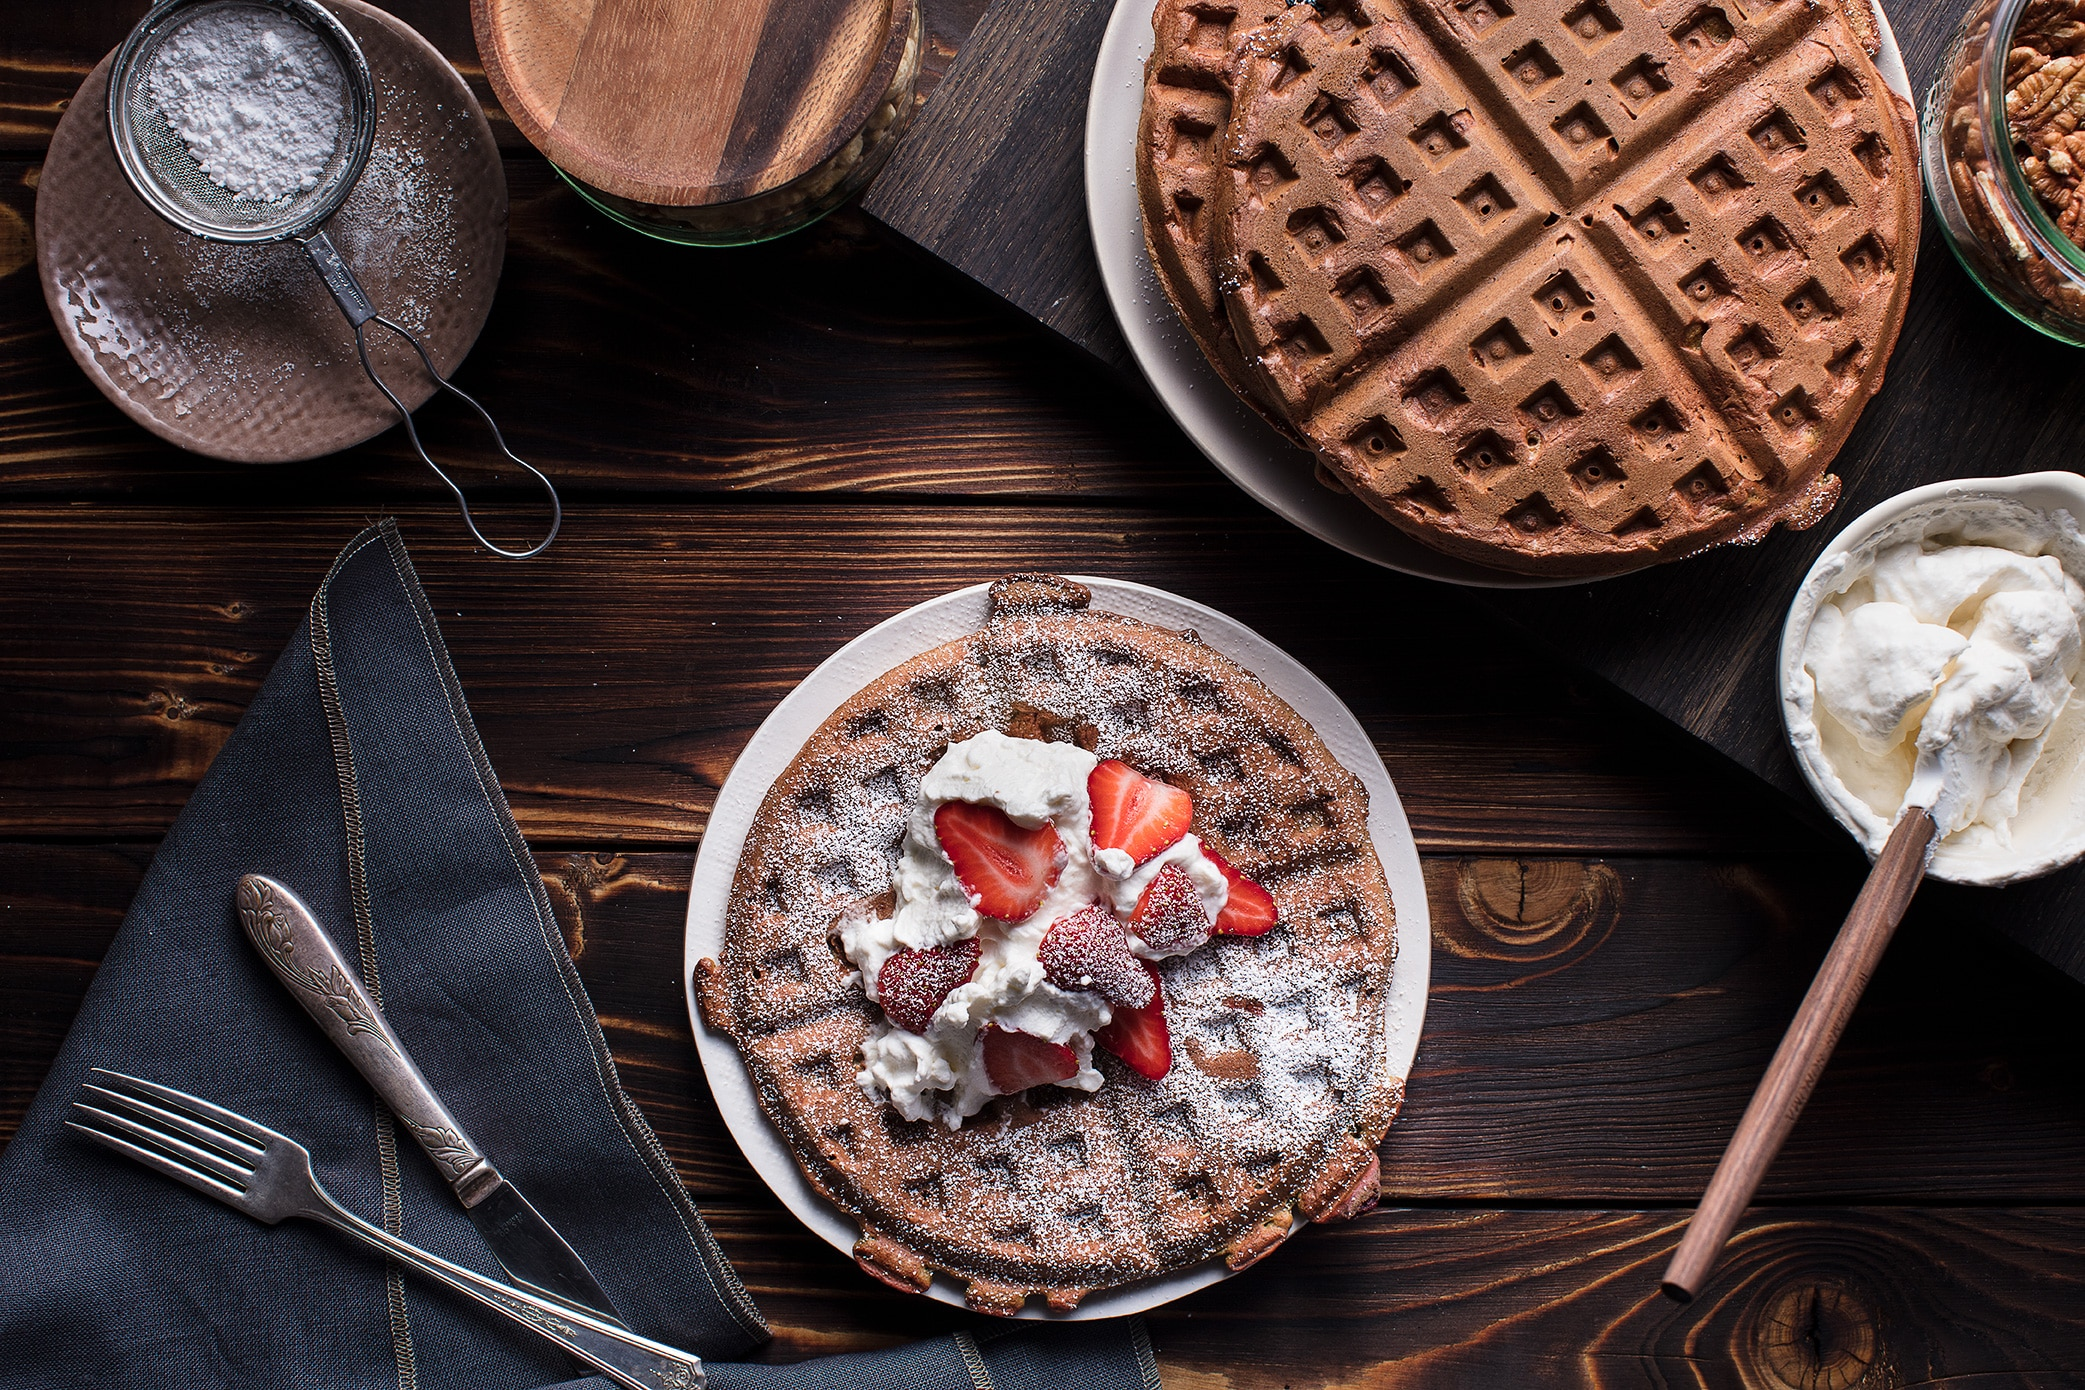 How To Make The Most Of National Strawberry Day - We Eat Together.com